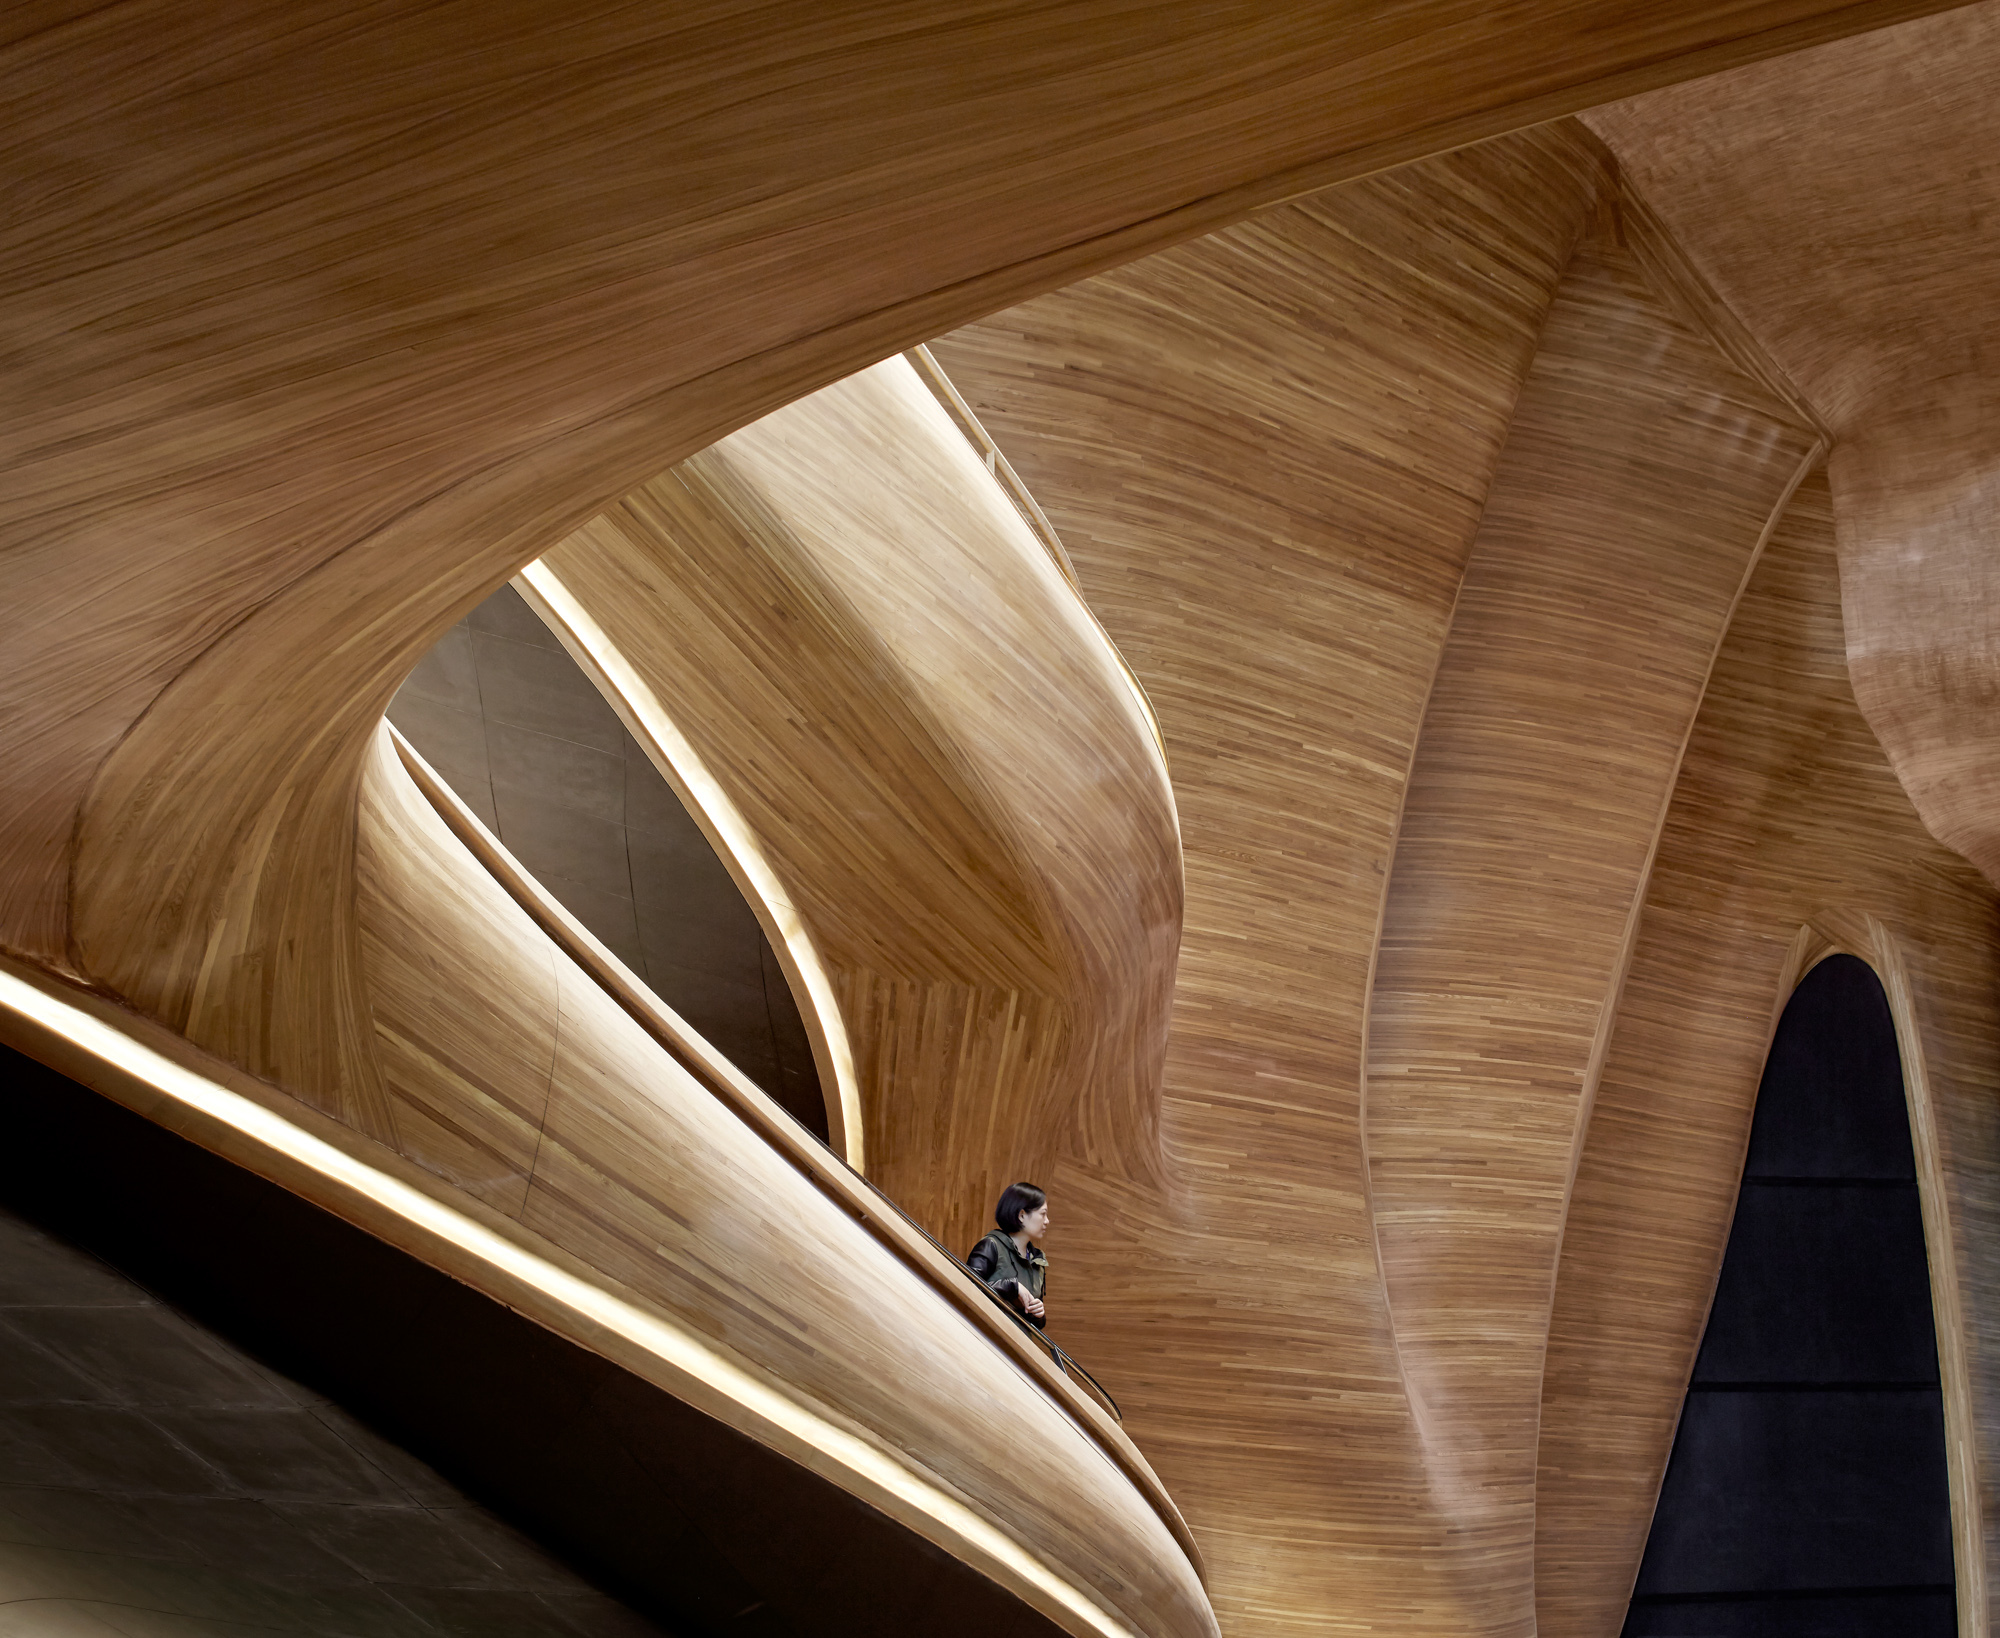 Gallery of harbin opera house mad architects 20 for Beijing opera house architect